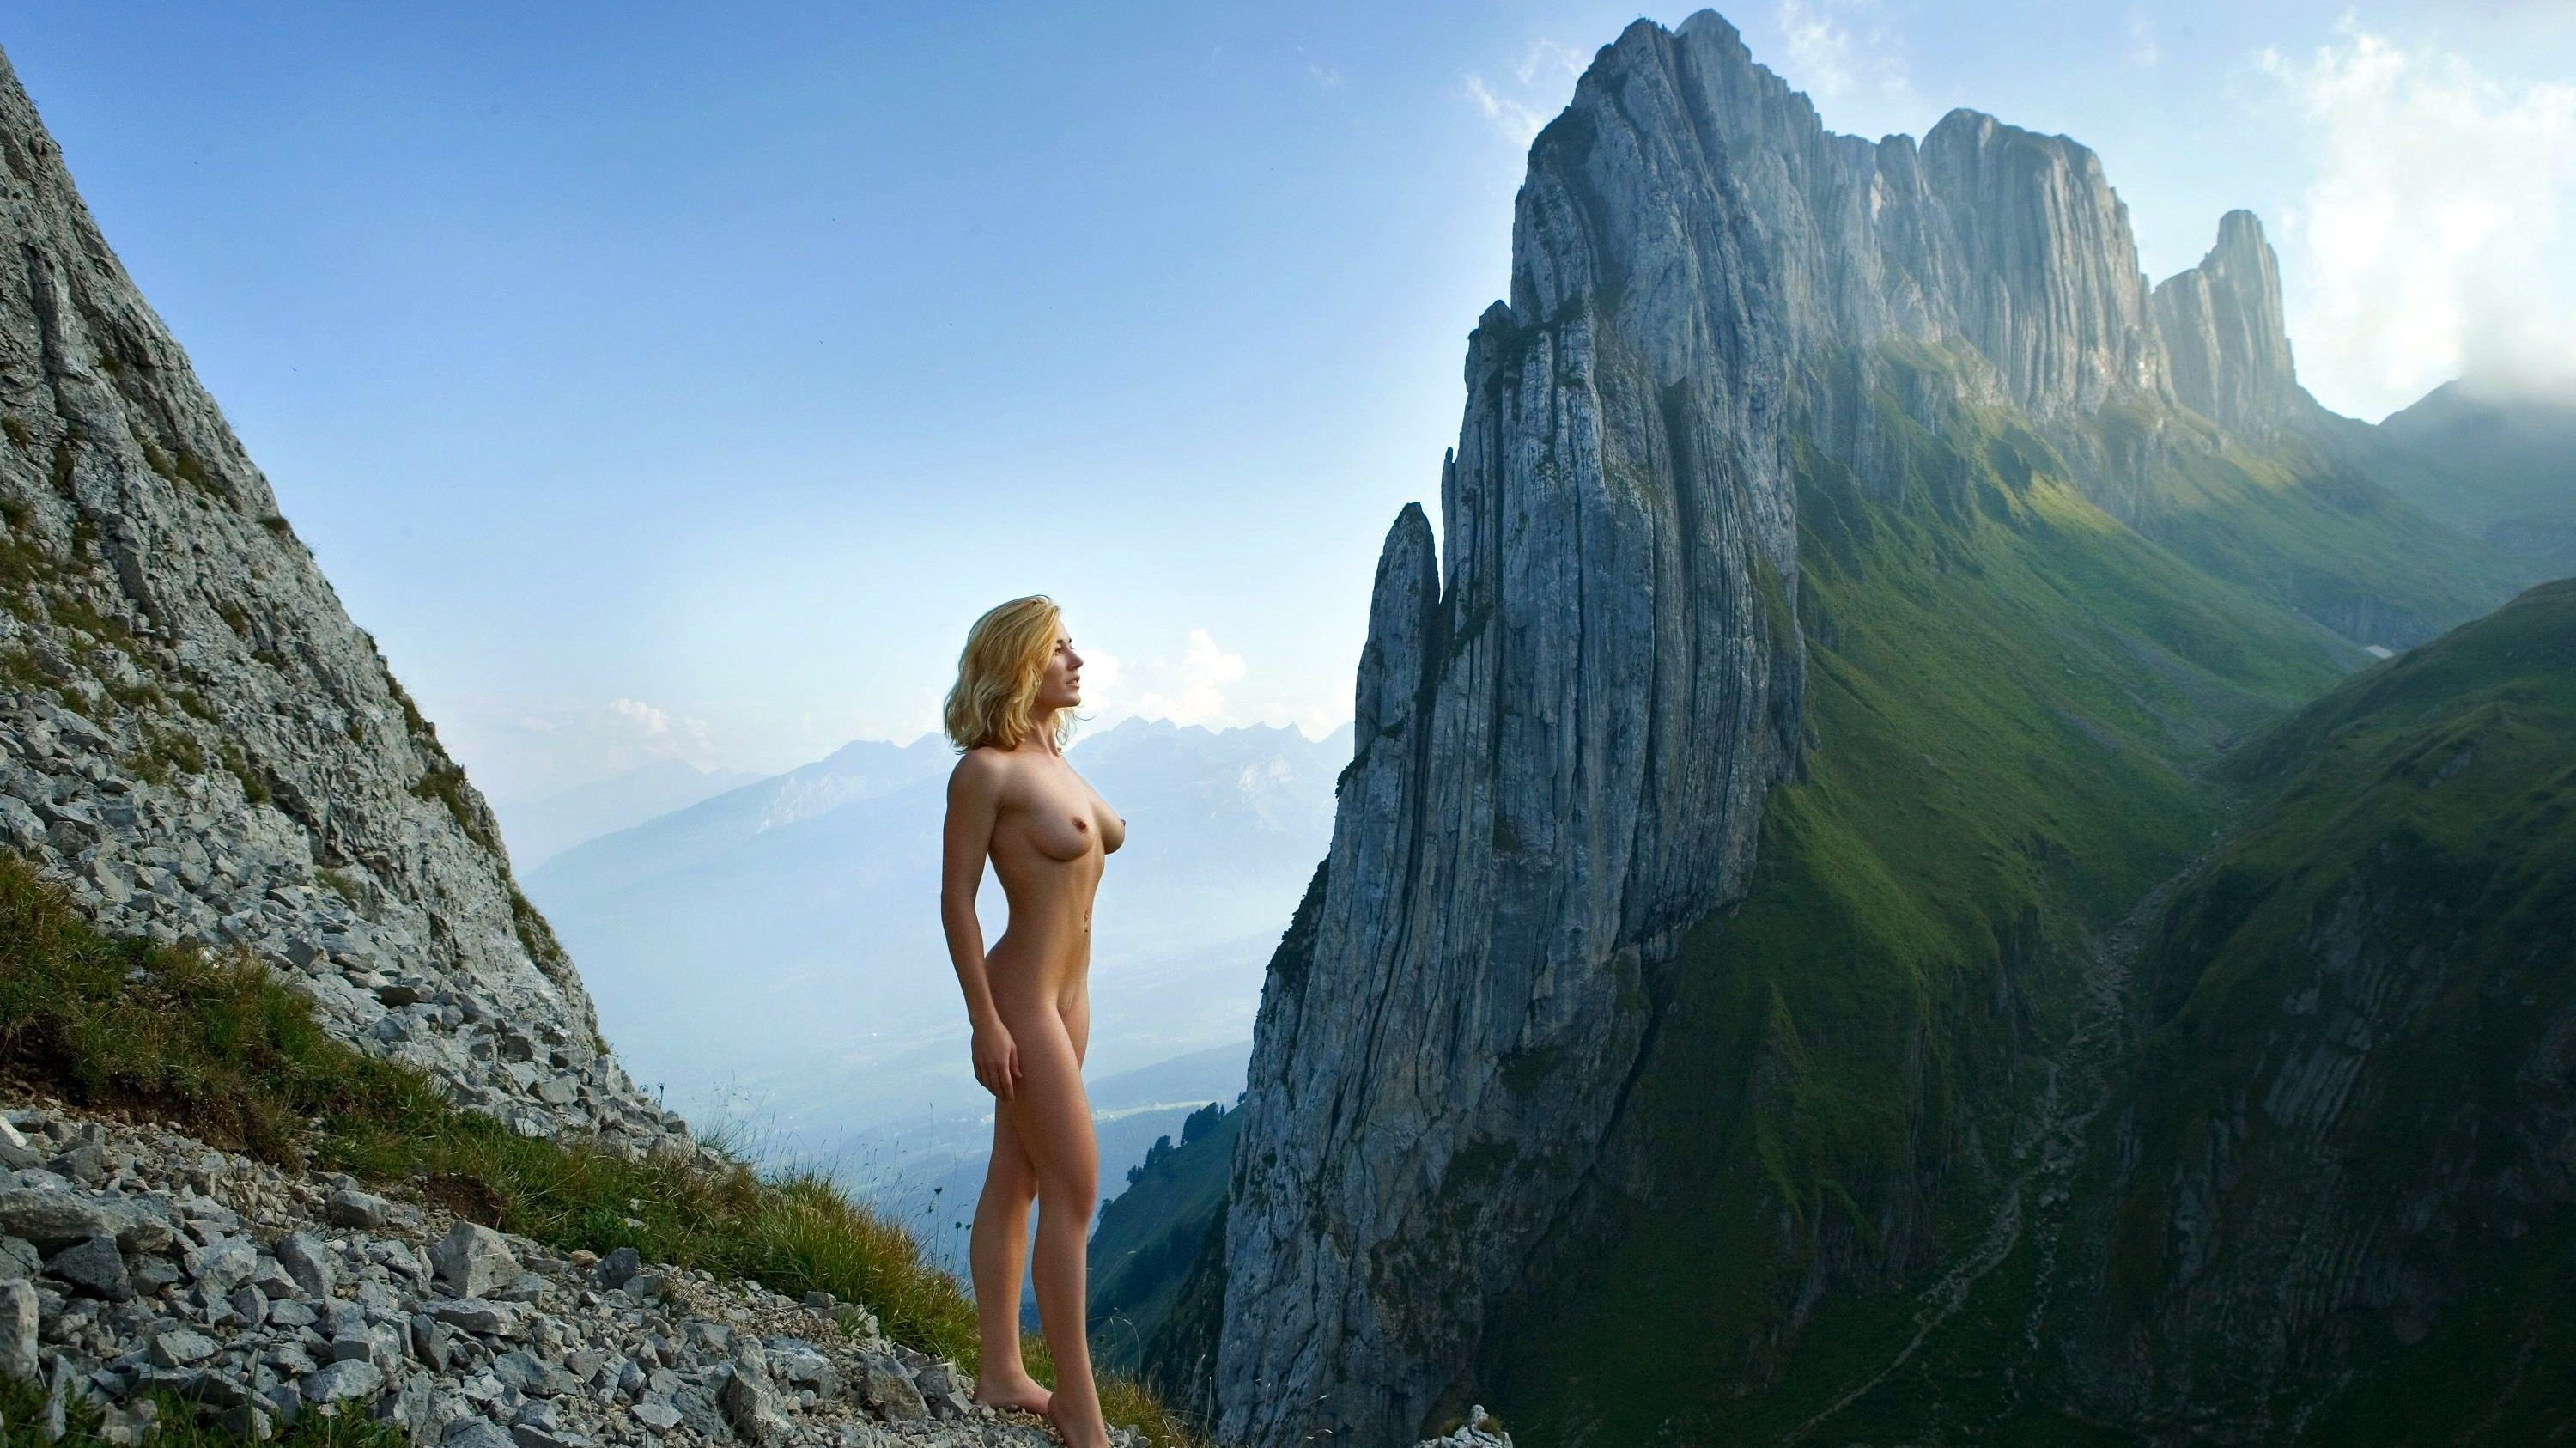 Download Wallpaper Blonde Mountains Girl Tits, 3000X1686 -1550